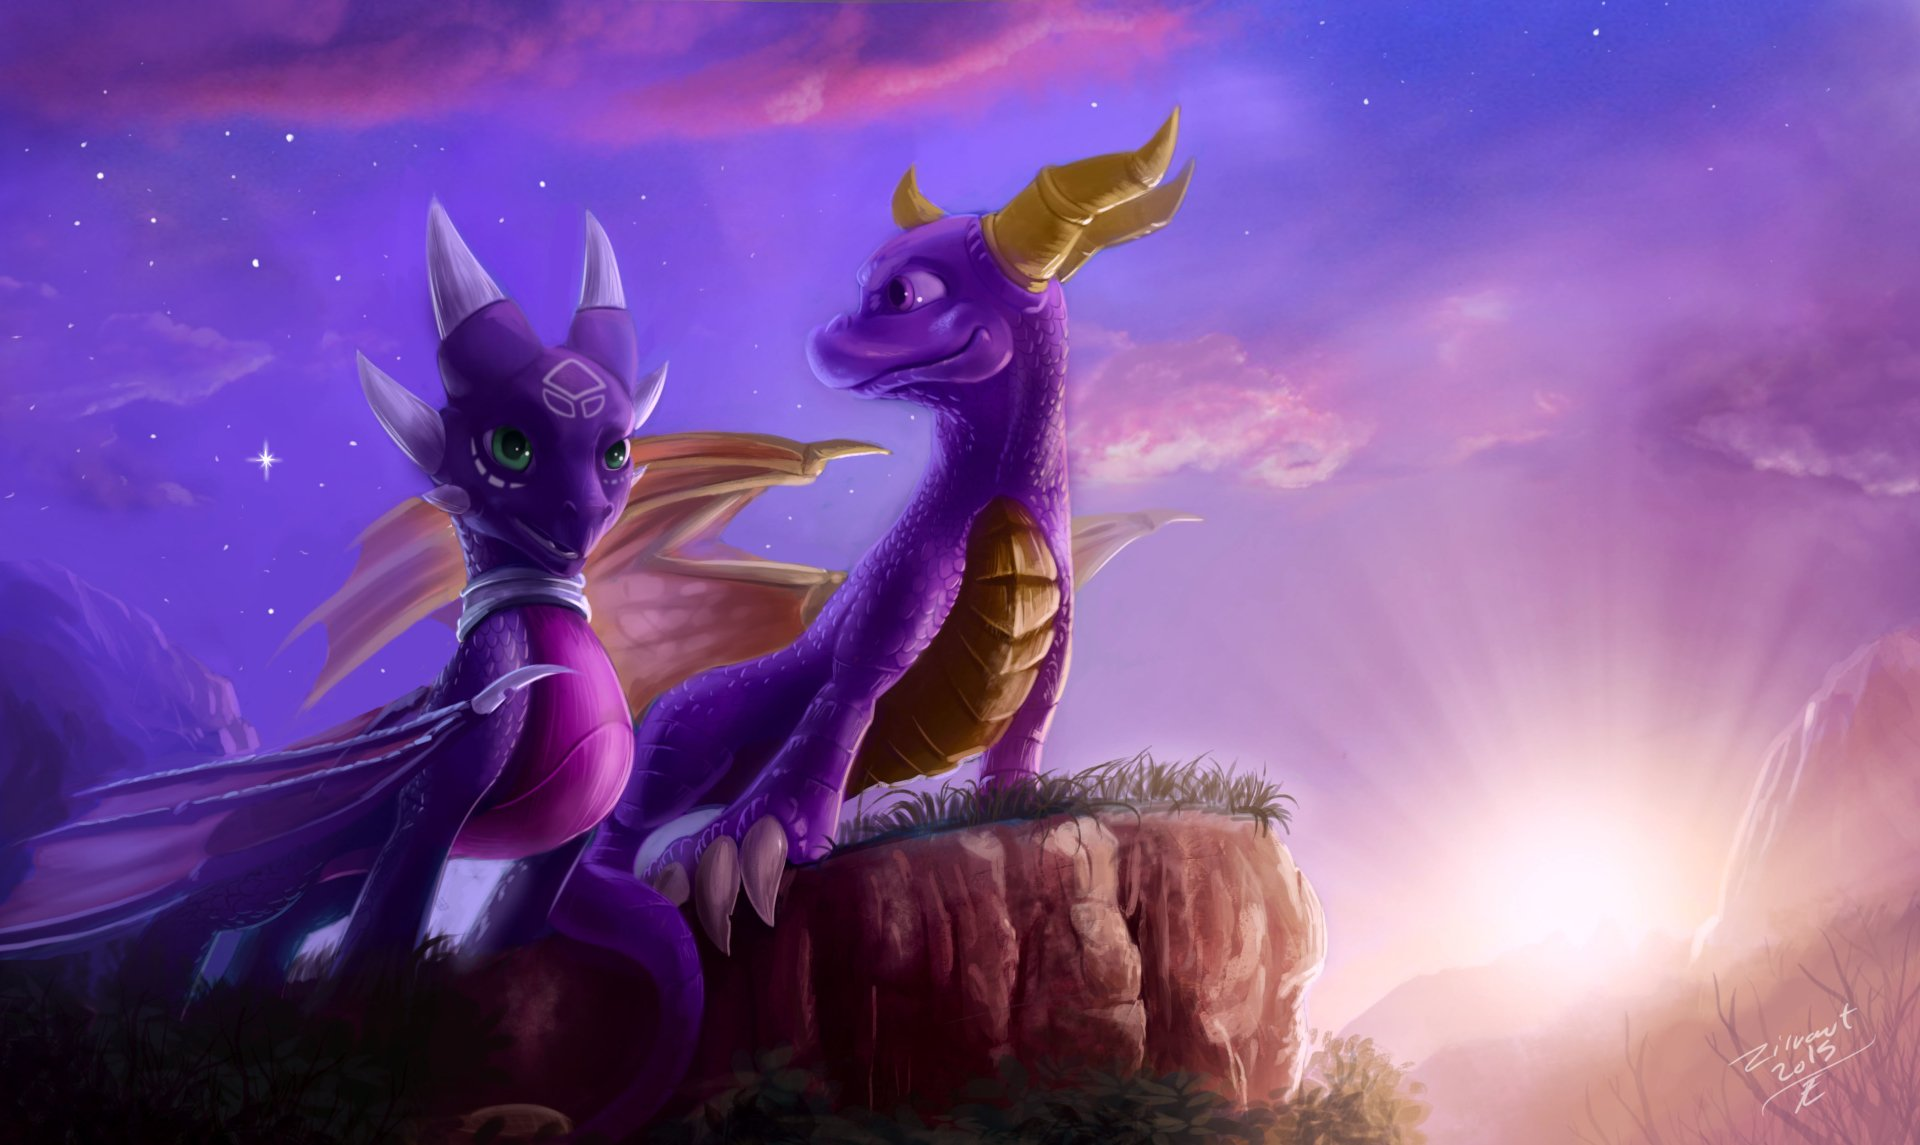 Spyro Iphone Wallpaper Spyro And Cynder 4k Ultra Hd Wallpaper And Background